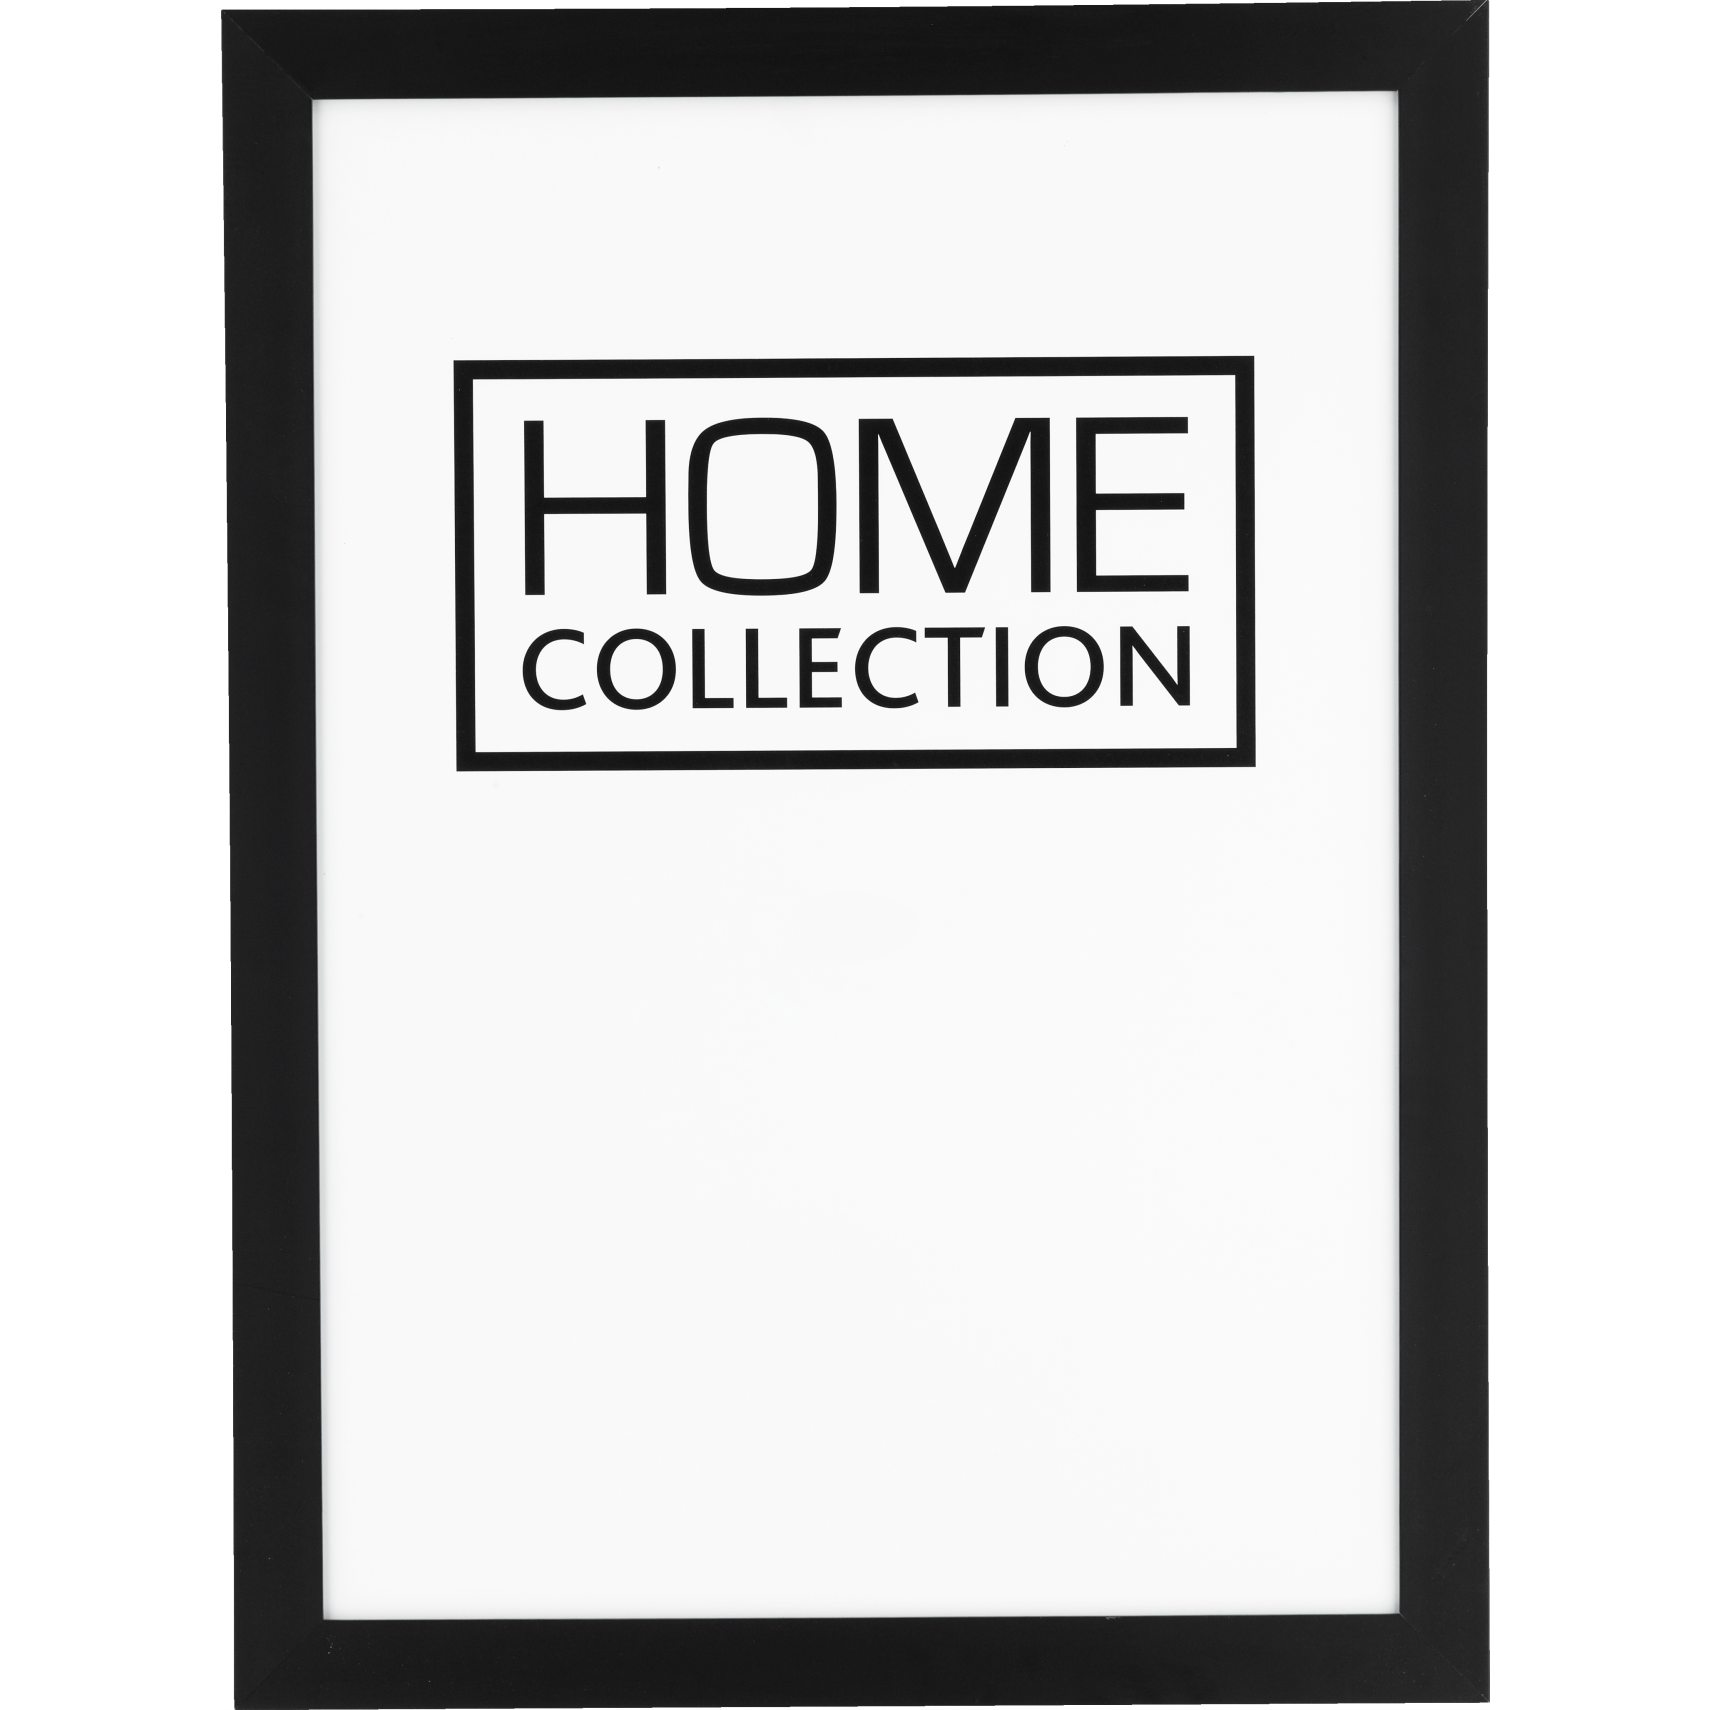 HOME COLLECTION Ramme 50 x 70 x 2 cm - Sort træramme